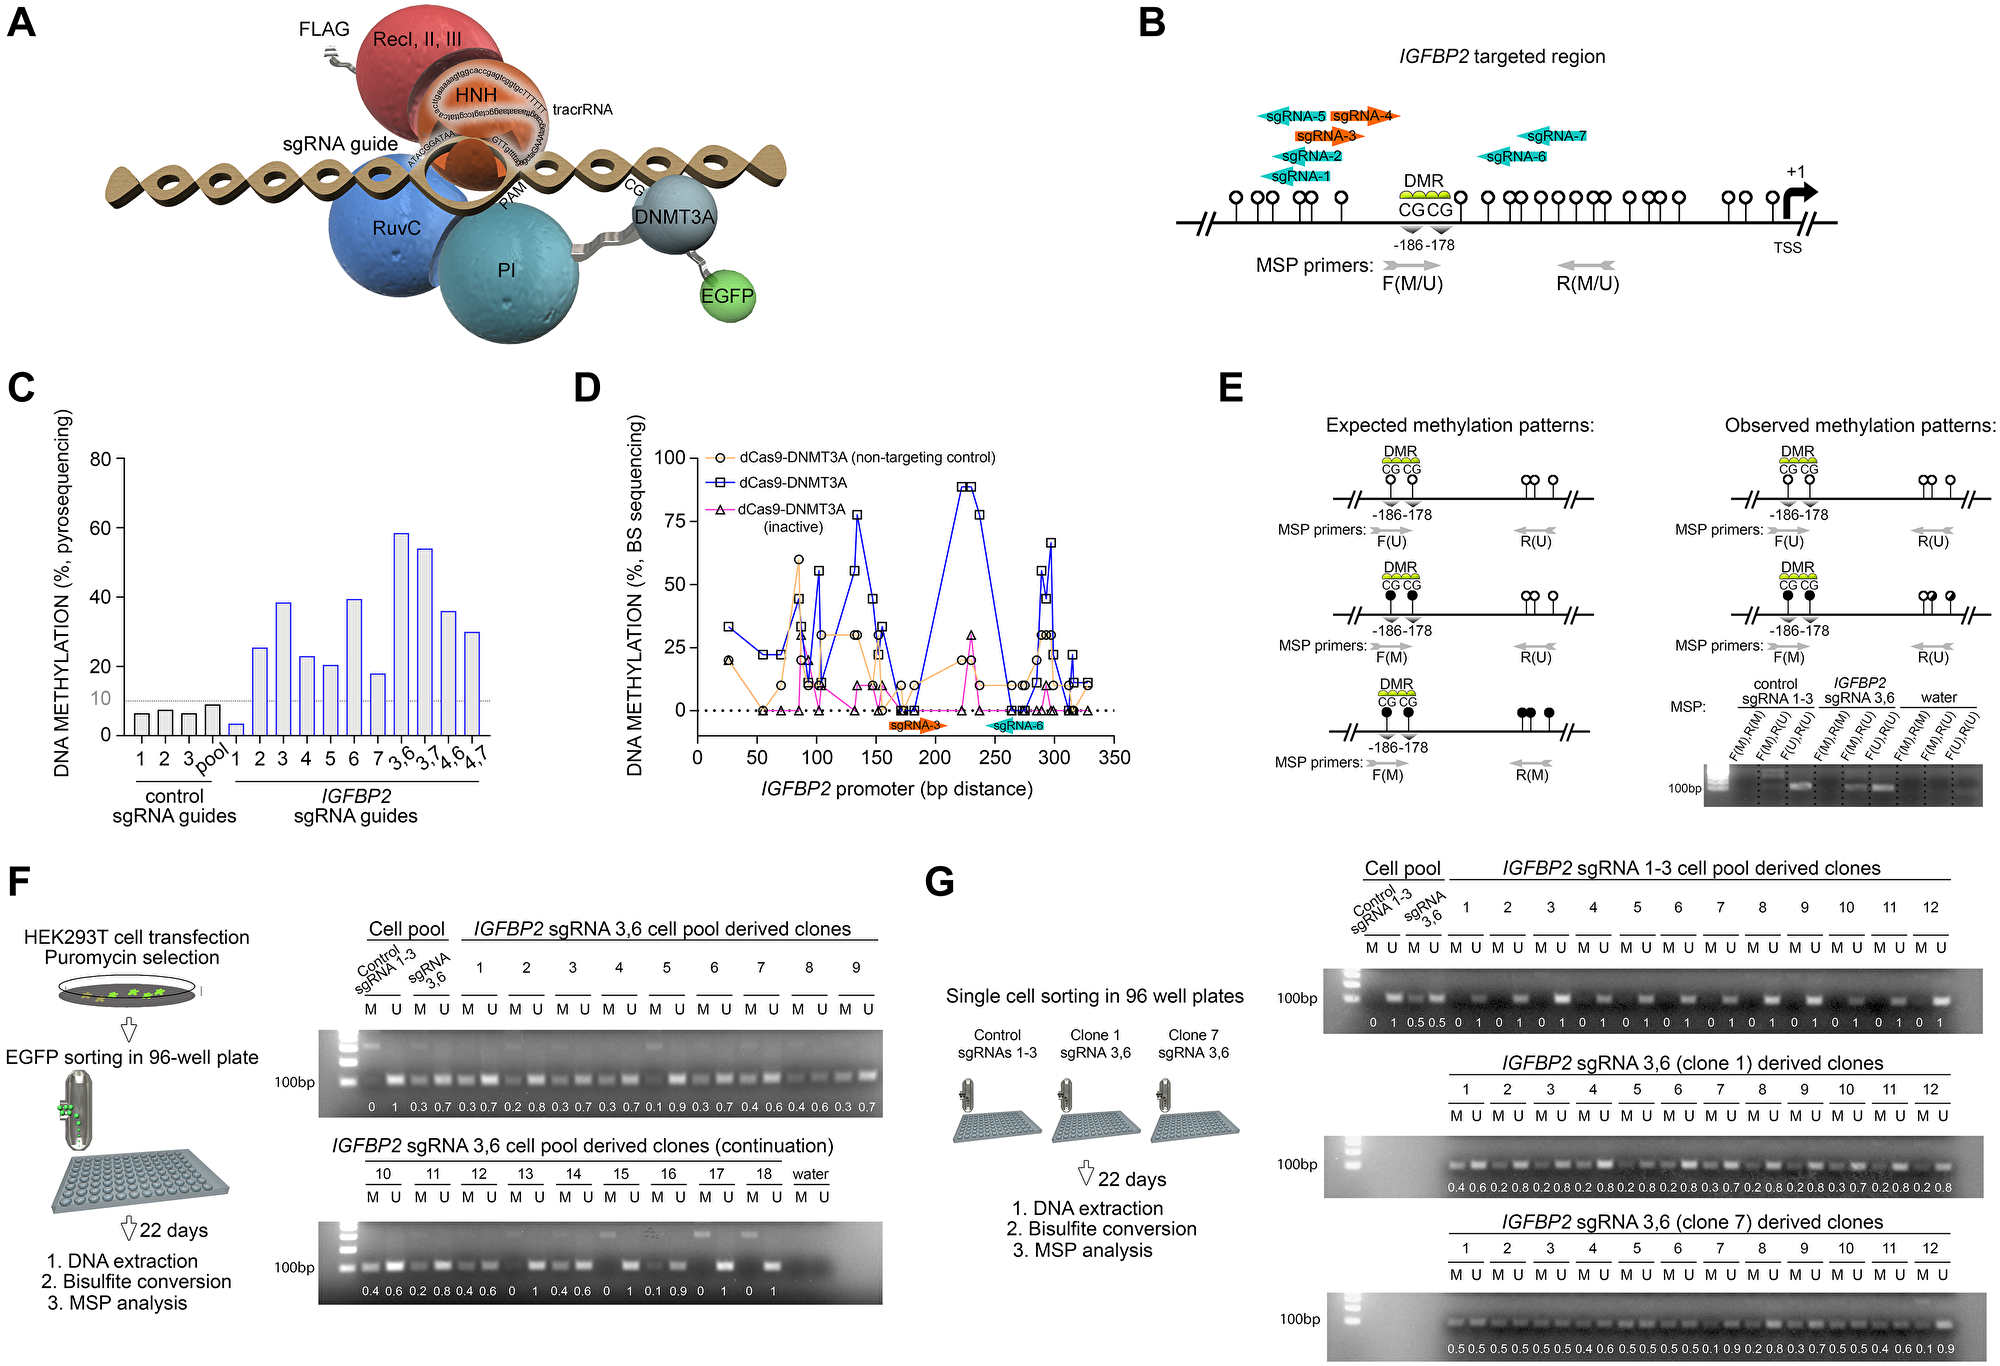 RNA-programmed DNA methylation of IGFBP2 promoter introduces stable and heritable marks across mitotic cell divisions.